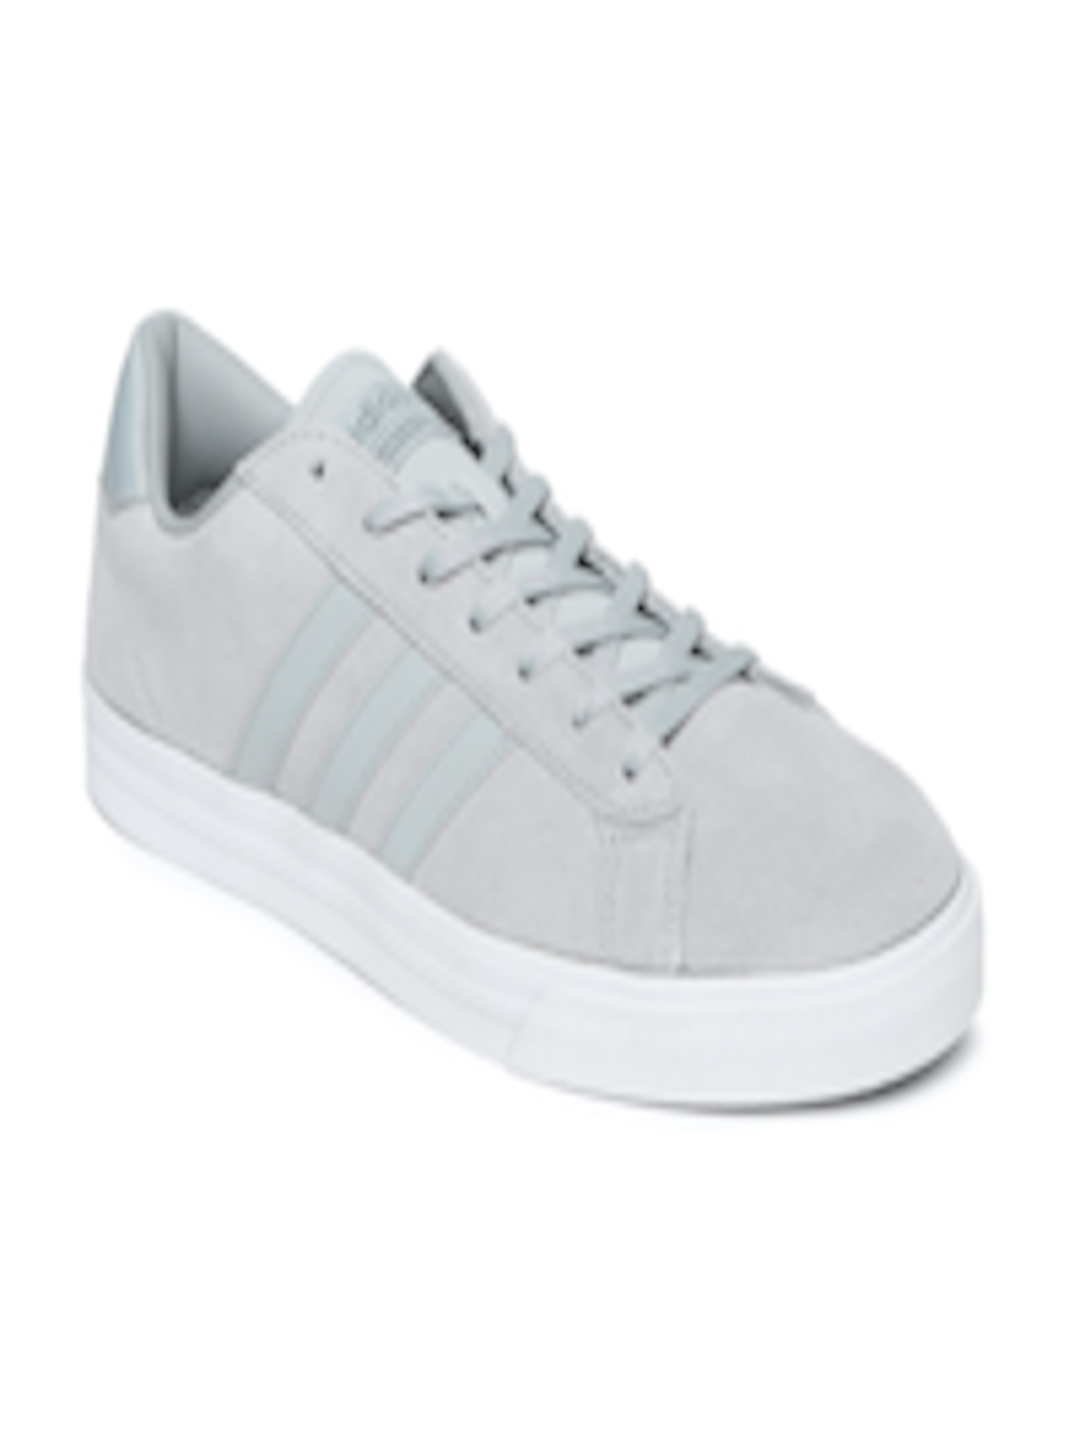 a32518f86001 Buy ADIDAS NEO Men Grey Leather Cloudfoam Super Daily Sneakers - Casual  Shoes for Men 1731092